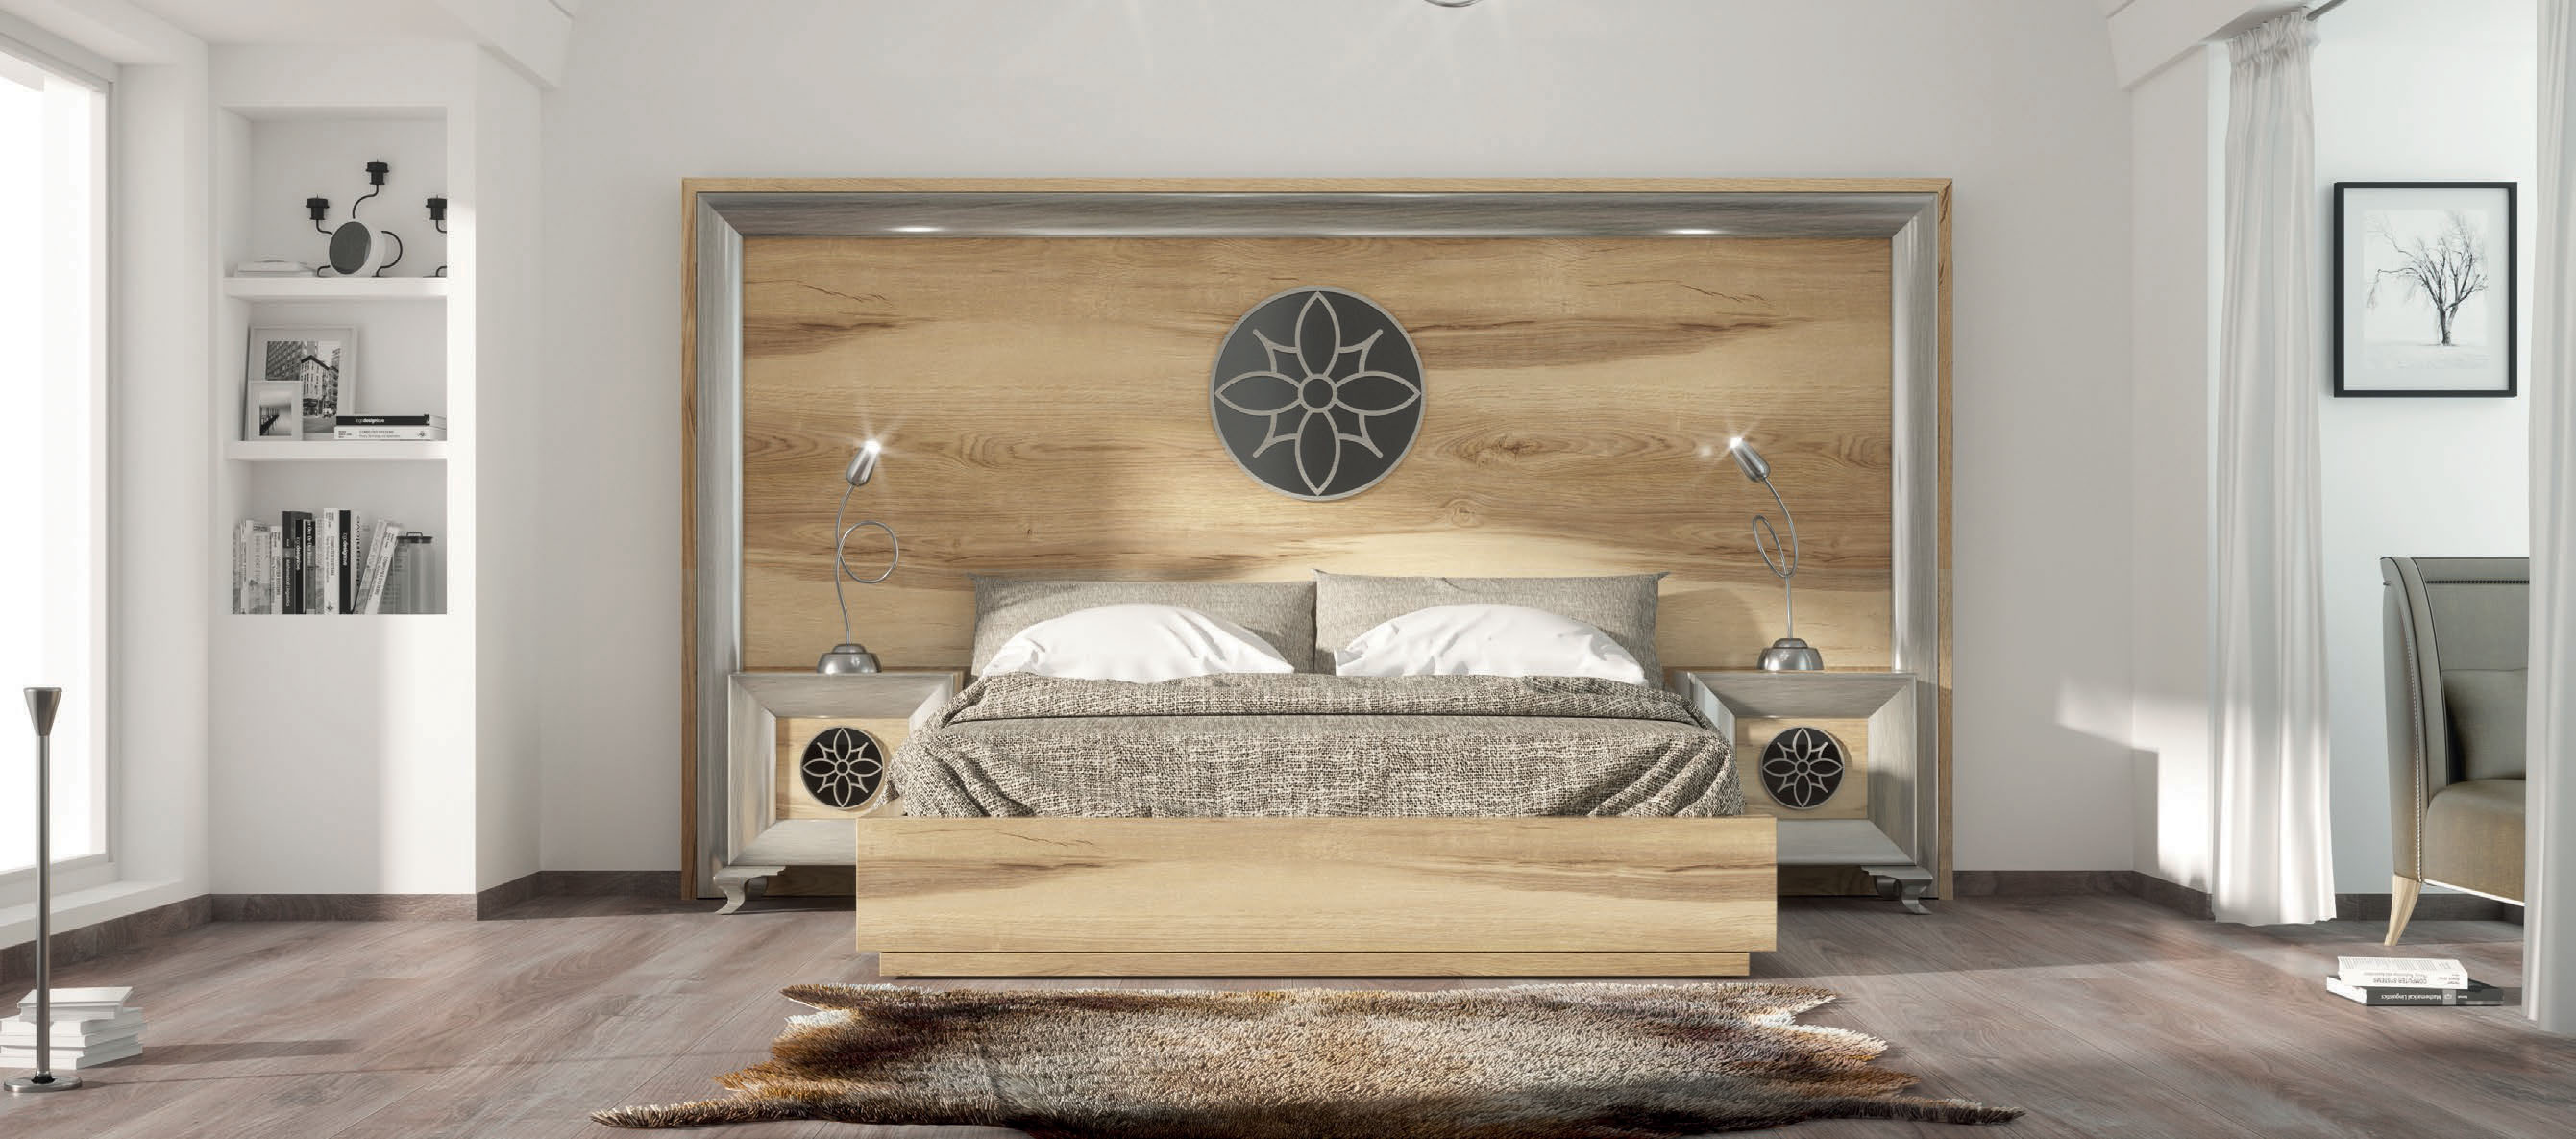 Brands Franco Furniture Bedrooms vol2, Spain DOR 103